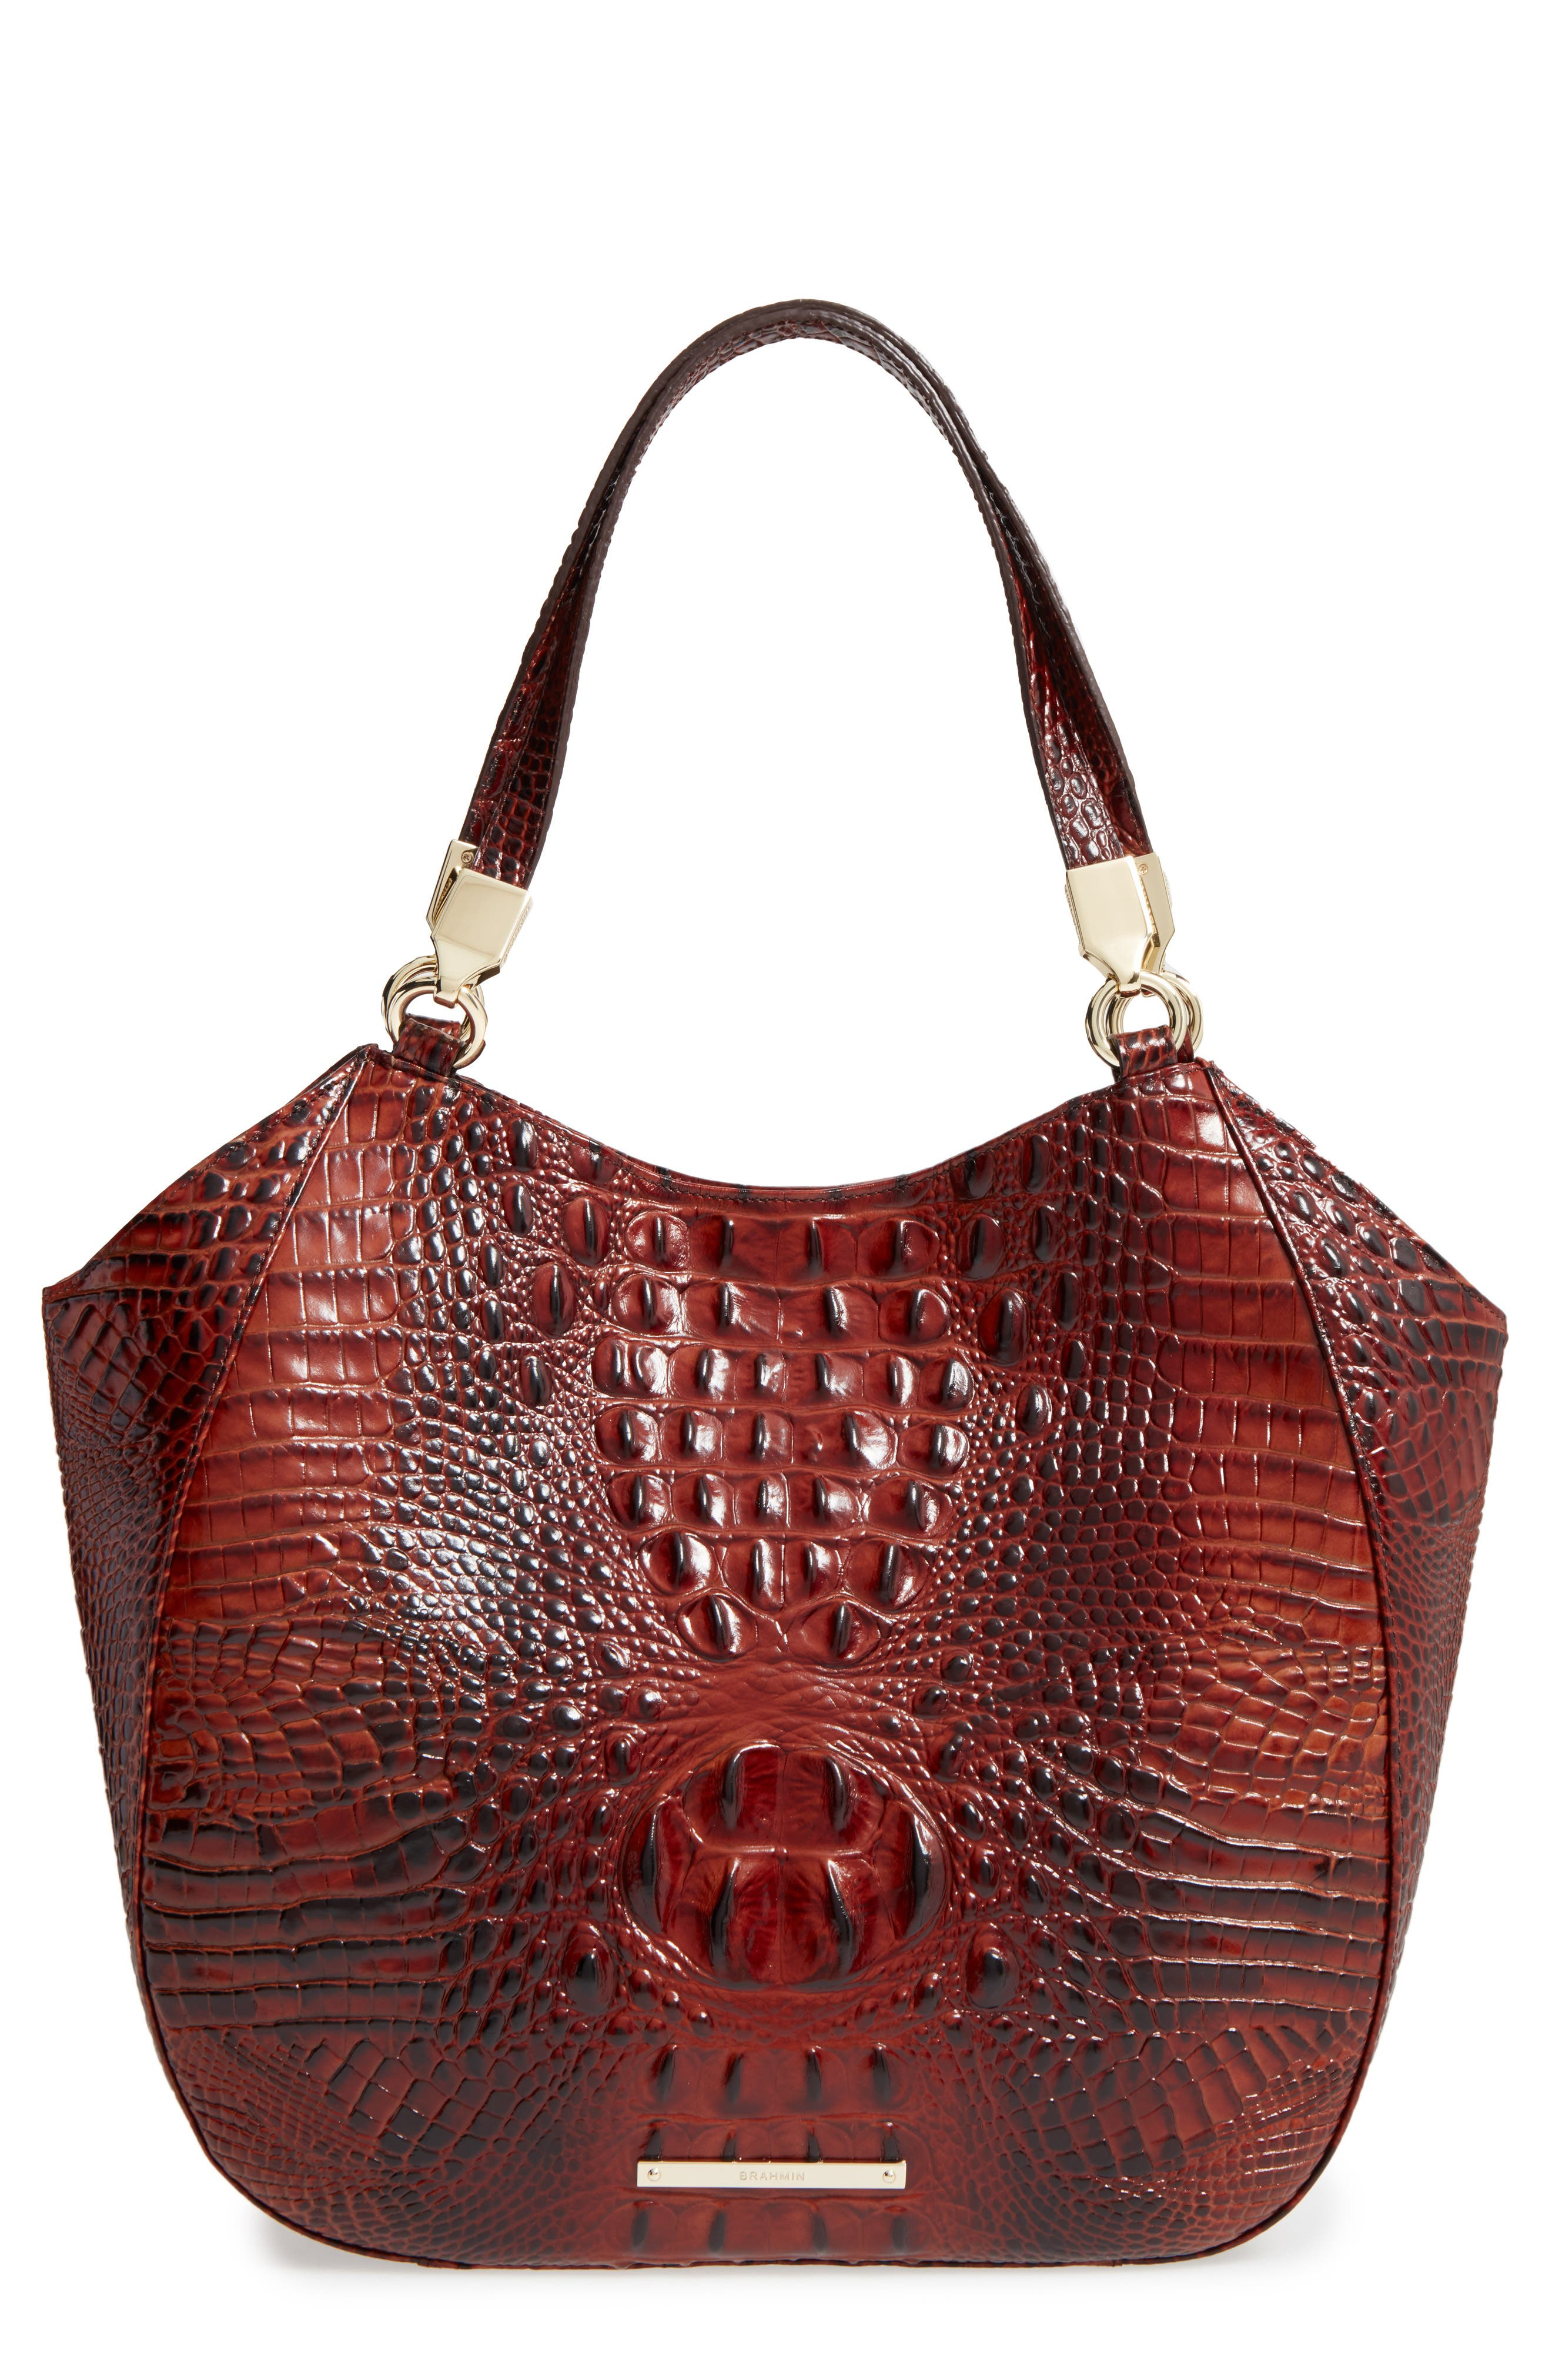 Alternate Image 1 Selected - Brahmin Melbourne Marianna Leather Tote